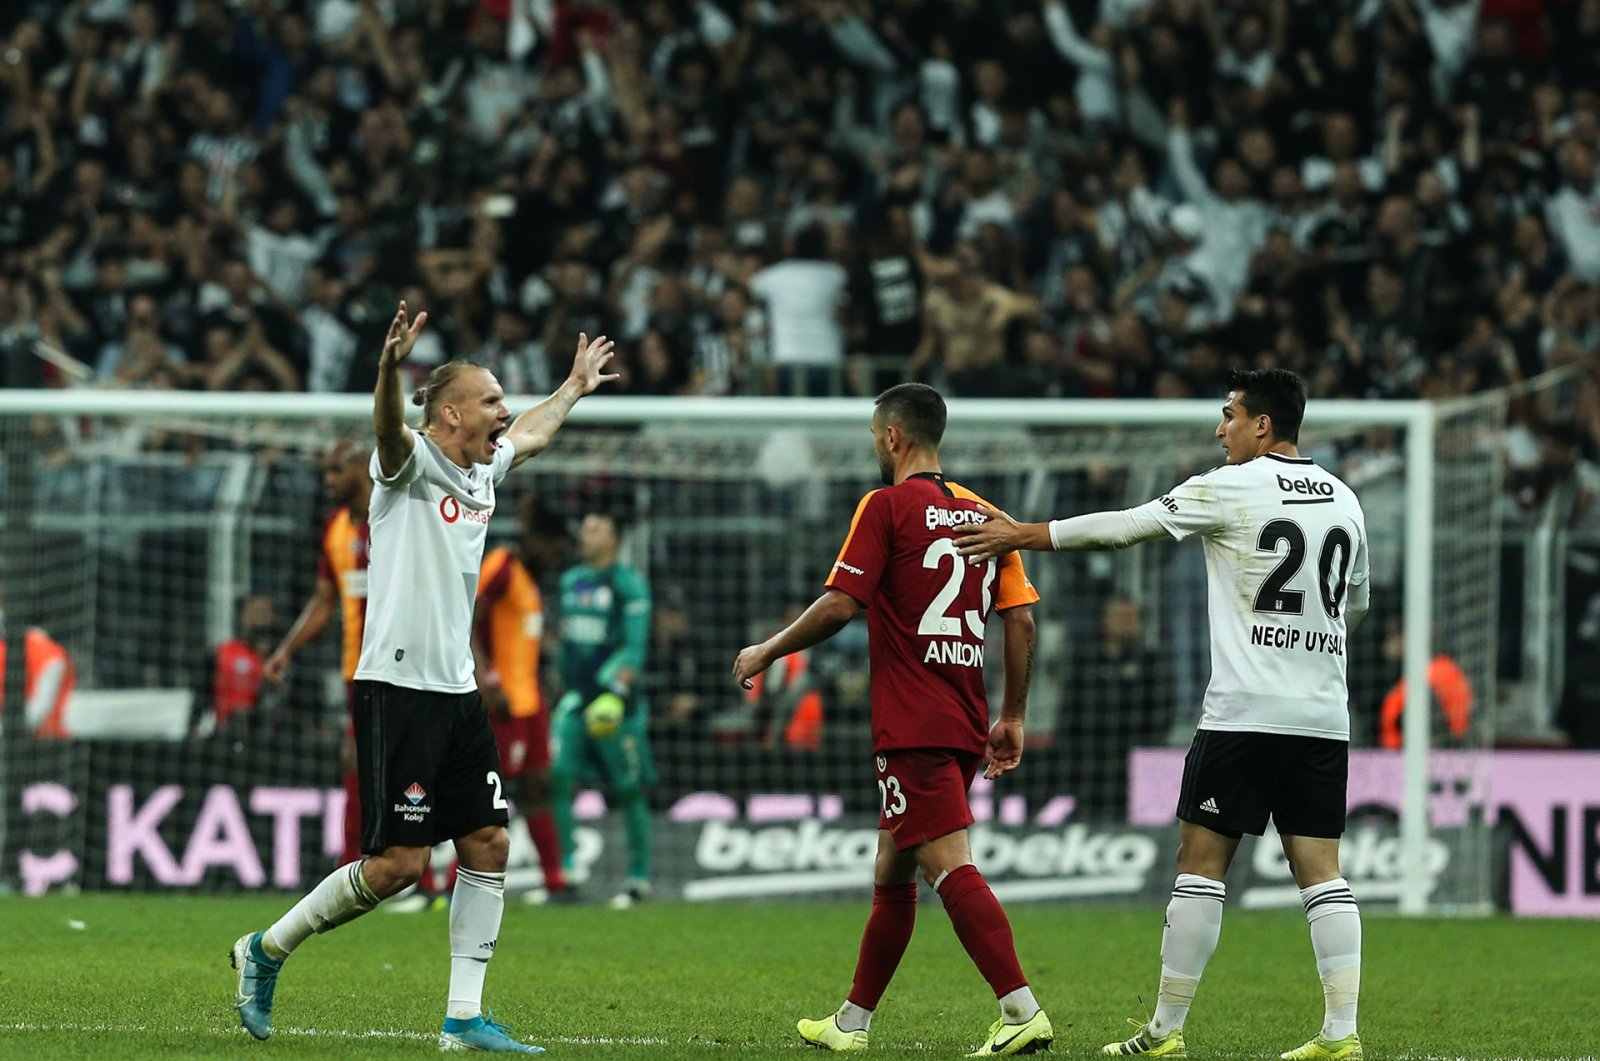 Beşiktaş players celebrate defeating Galatasaray in a Süper Lig match in Istanbul, Oct. 28, 2019. (AA Photo)